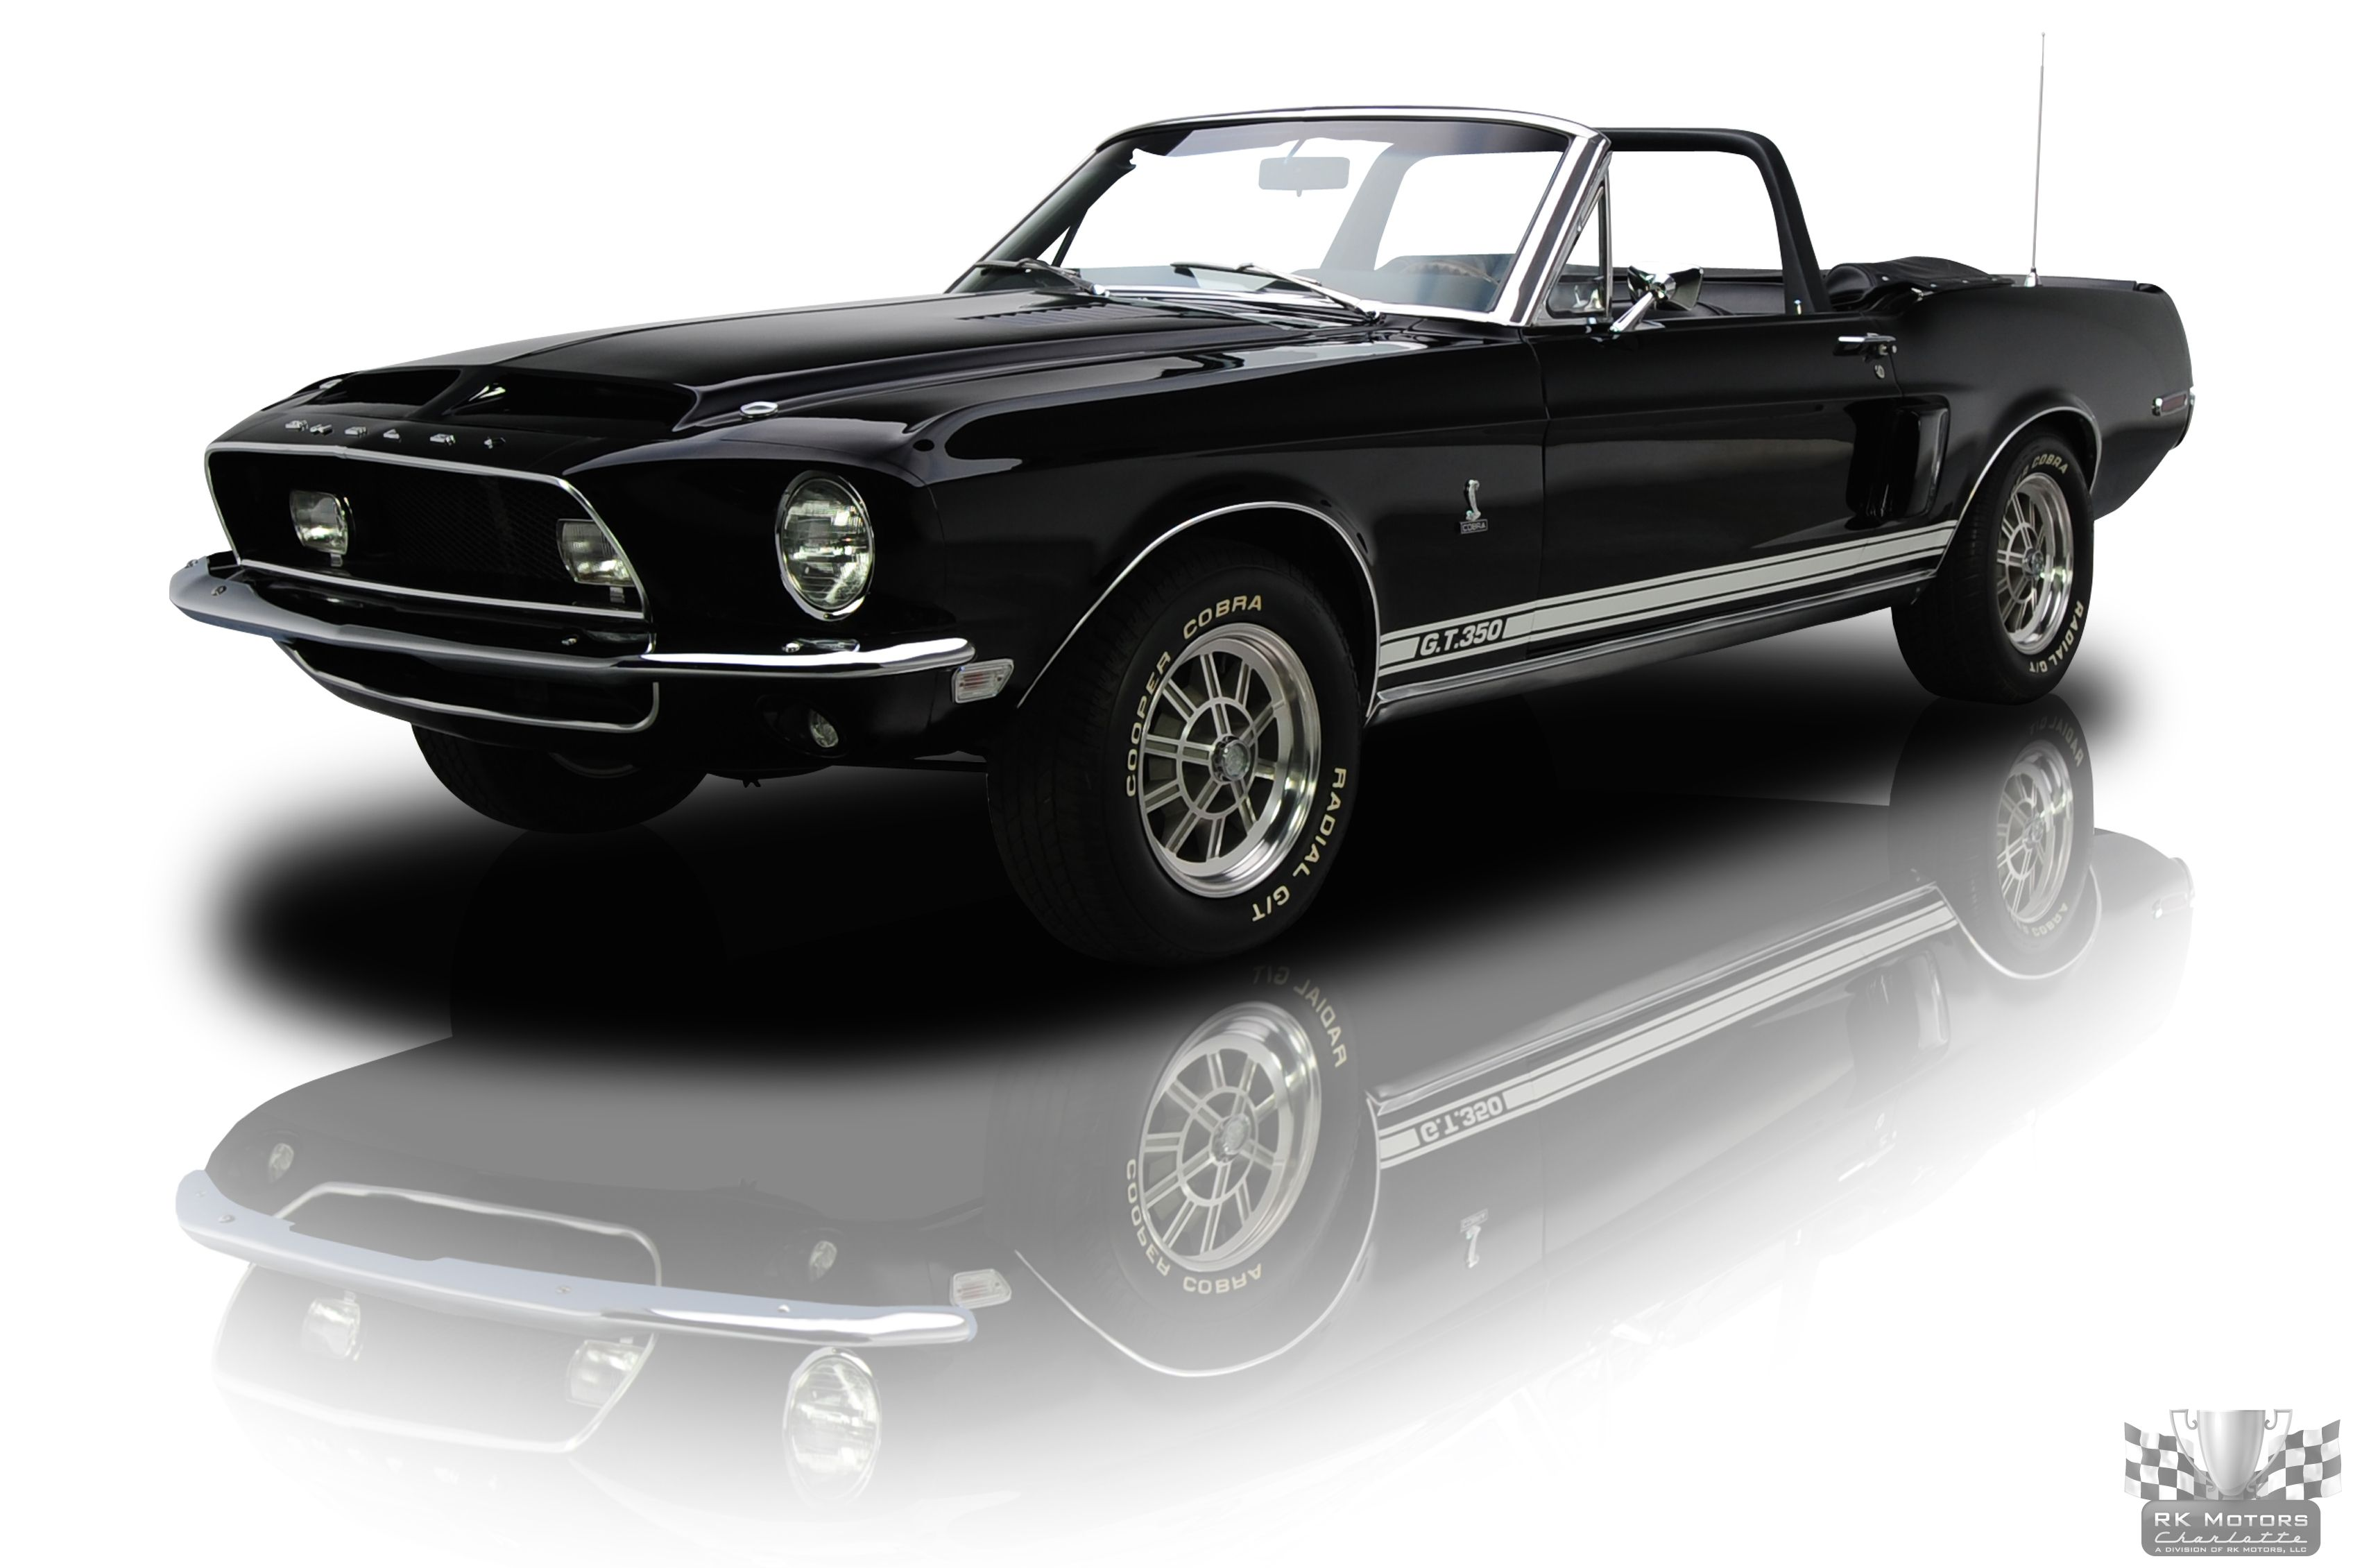 1967 ford mustang shelby gt500 style car high pinterest cars shelby gt500 and mustangs